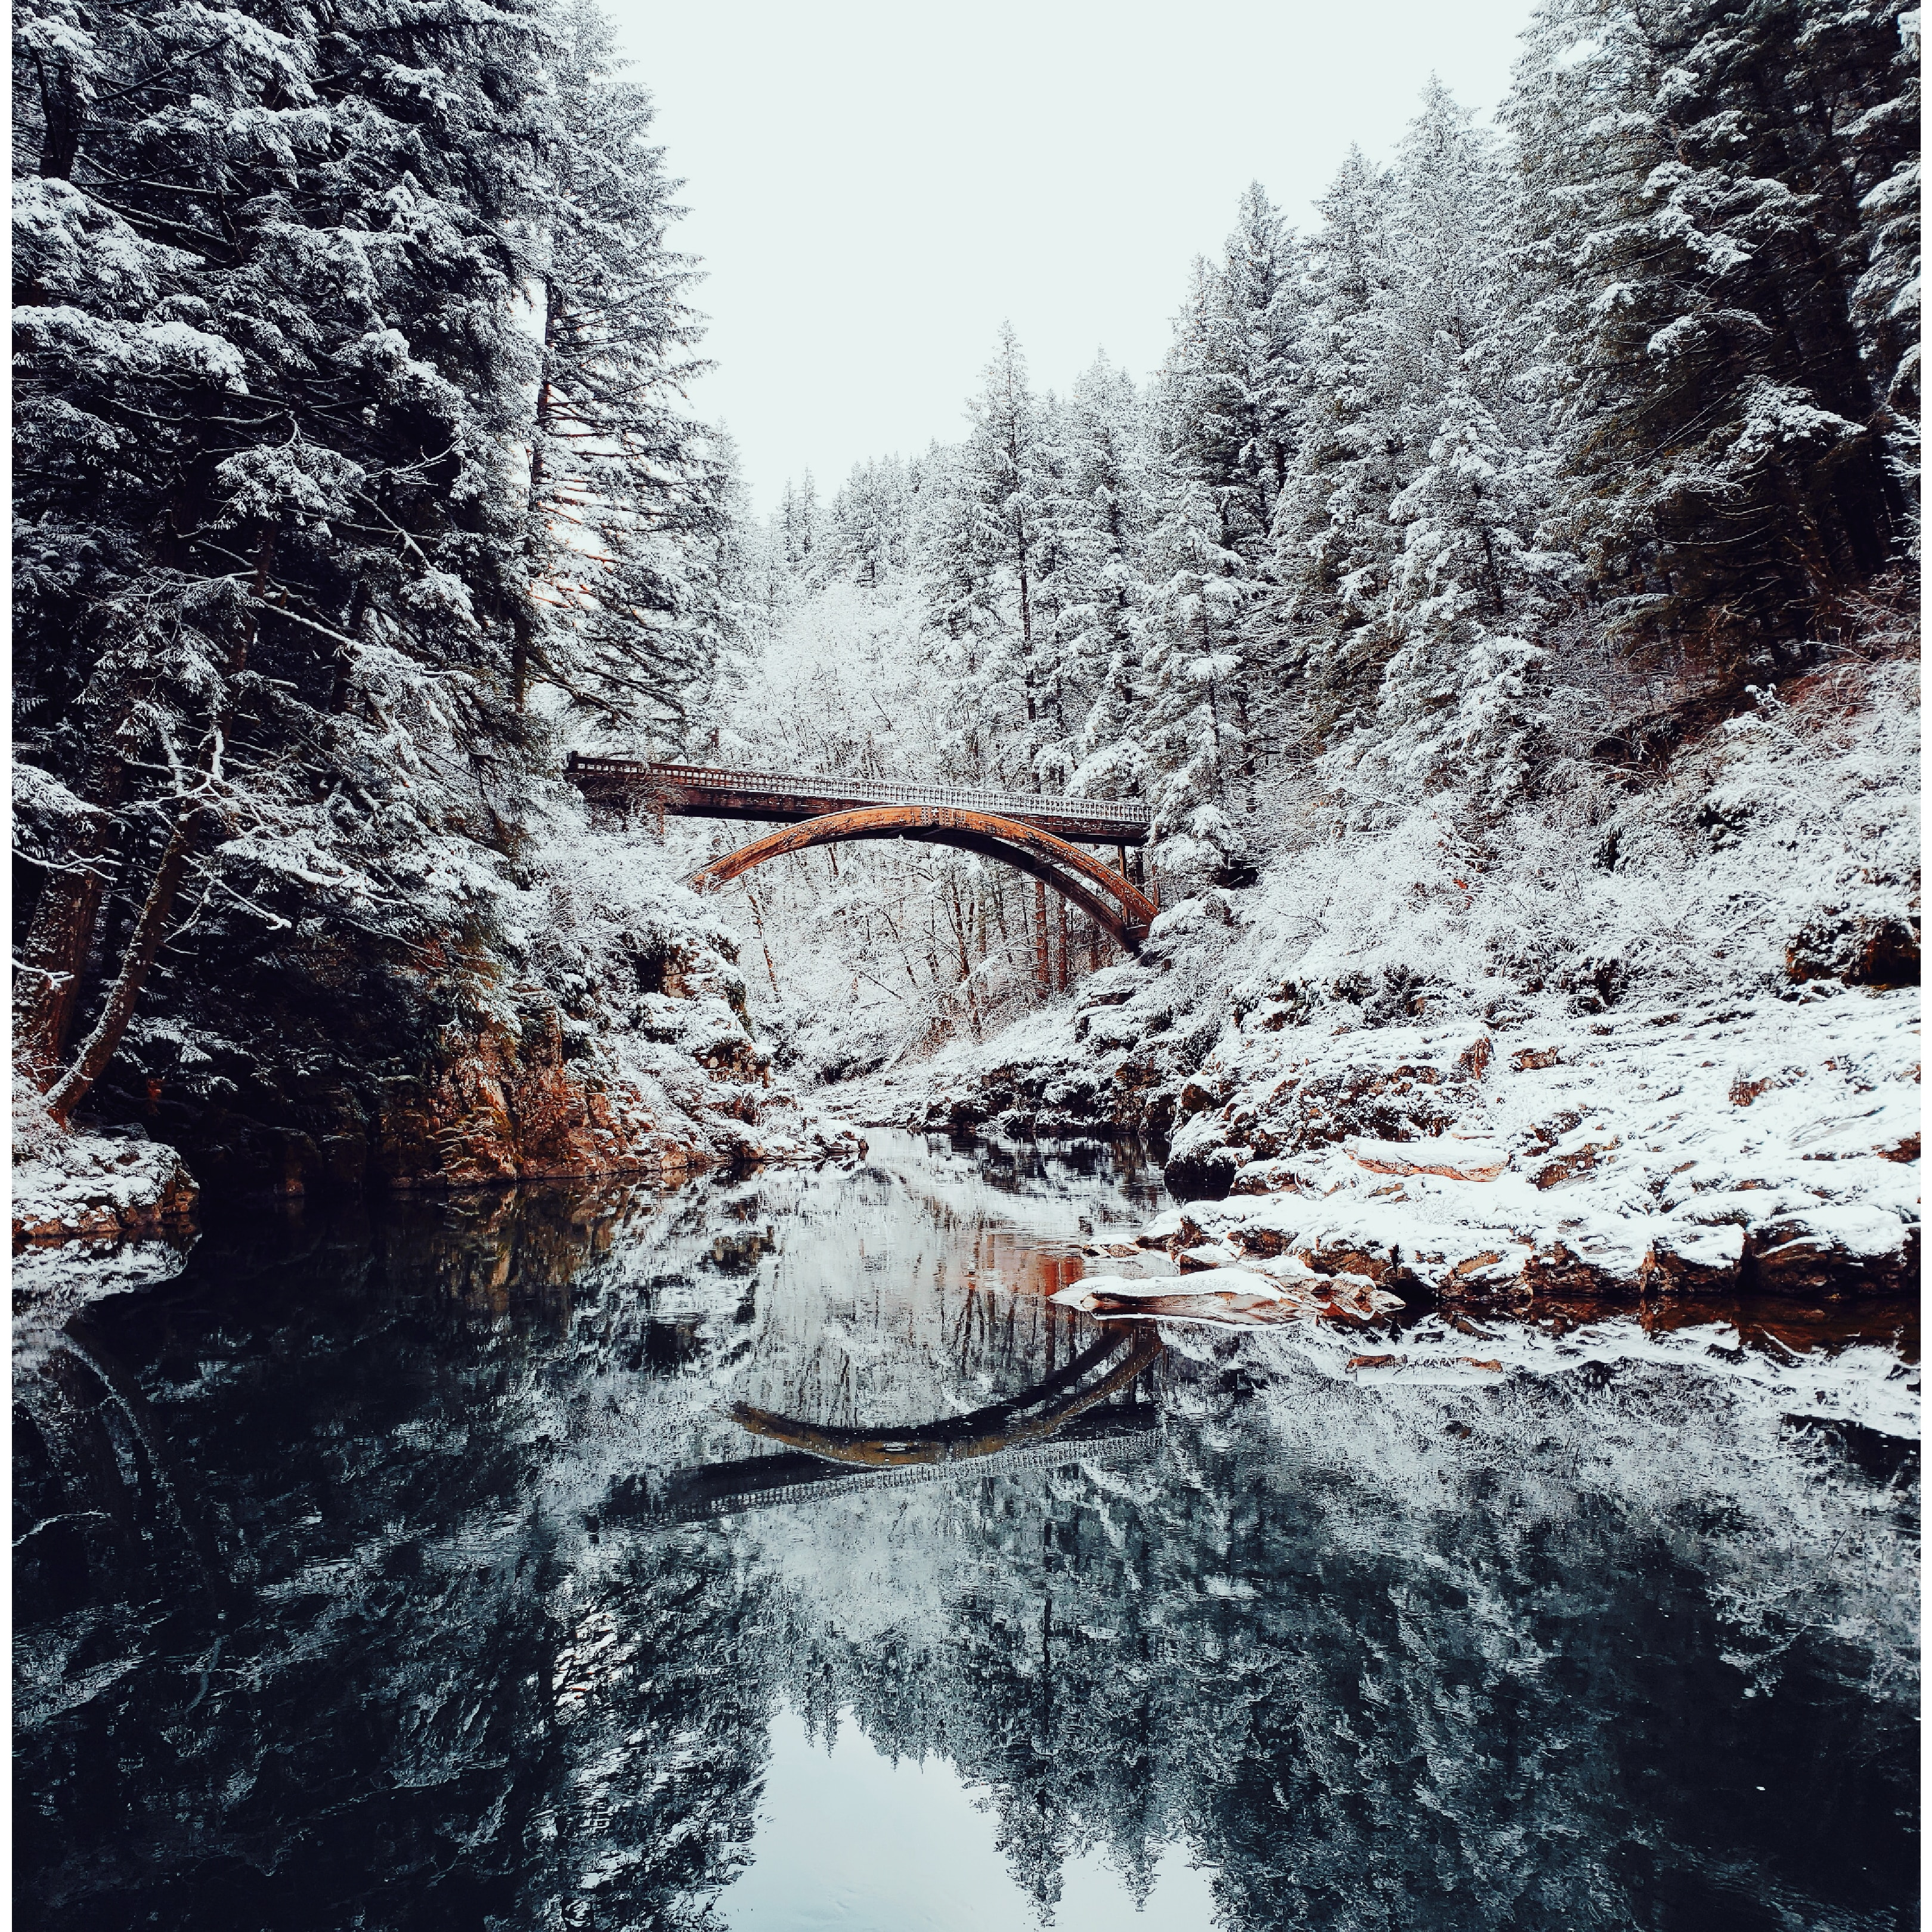 153192 free wallpaper 320x480 for phone, download images Landscape, Winter, Nature, Rivers, Snow, Bridge 320x480 for mobile